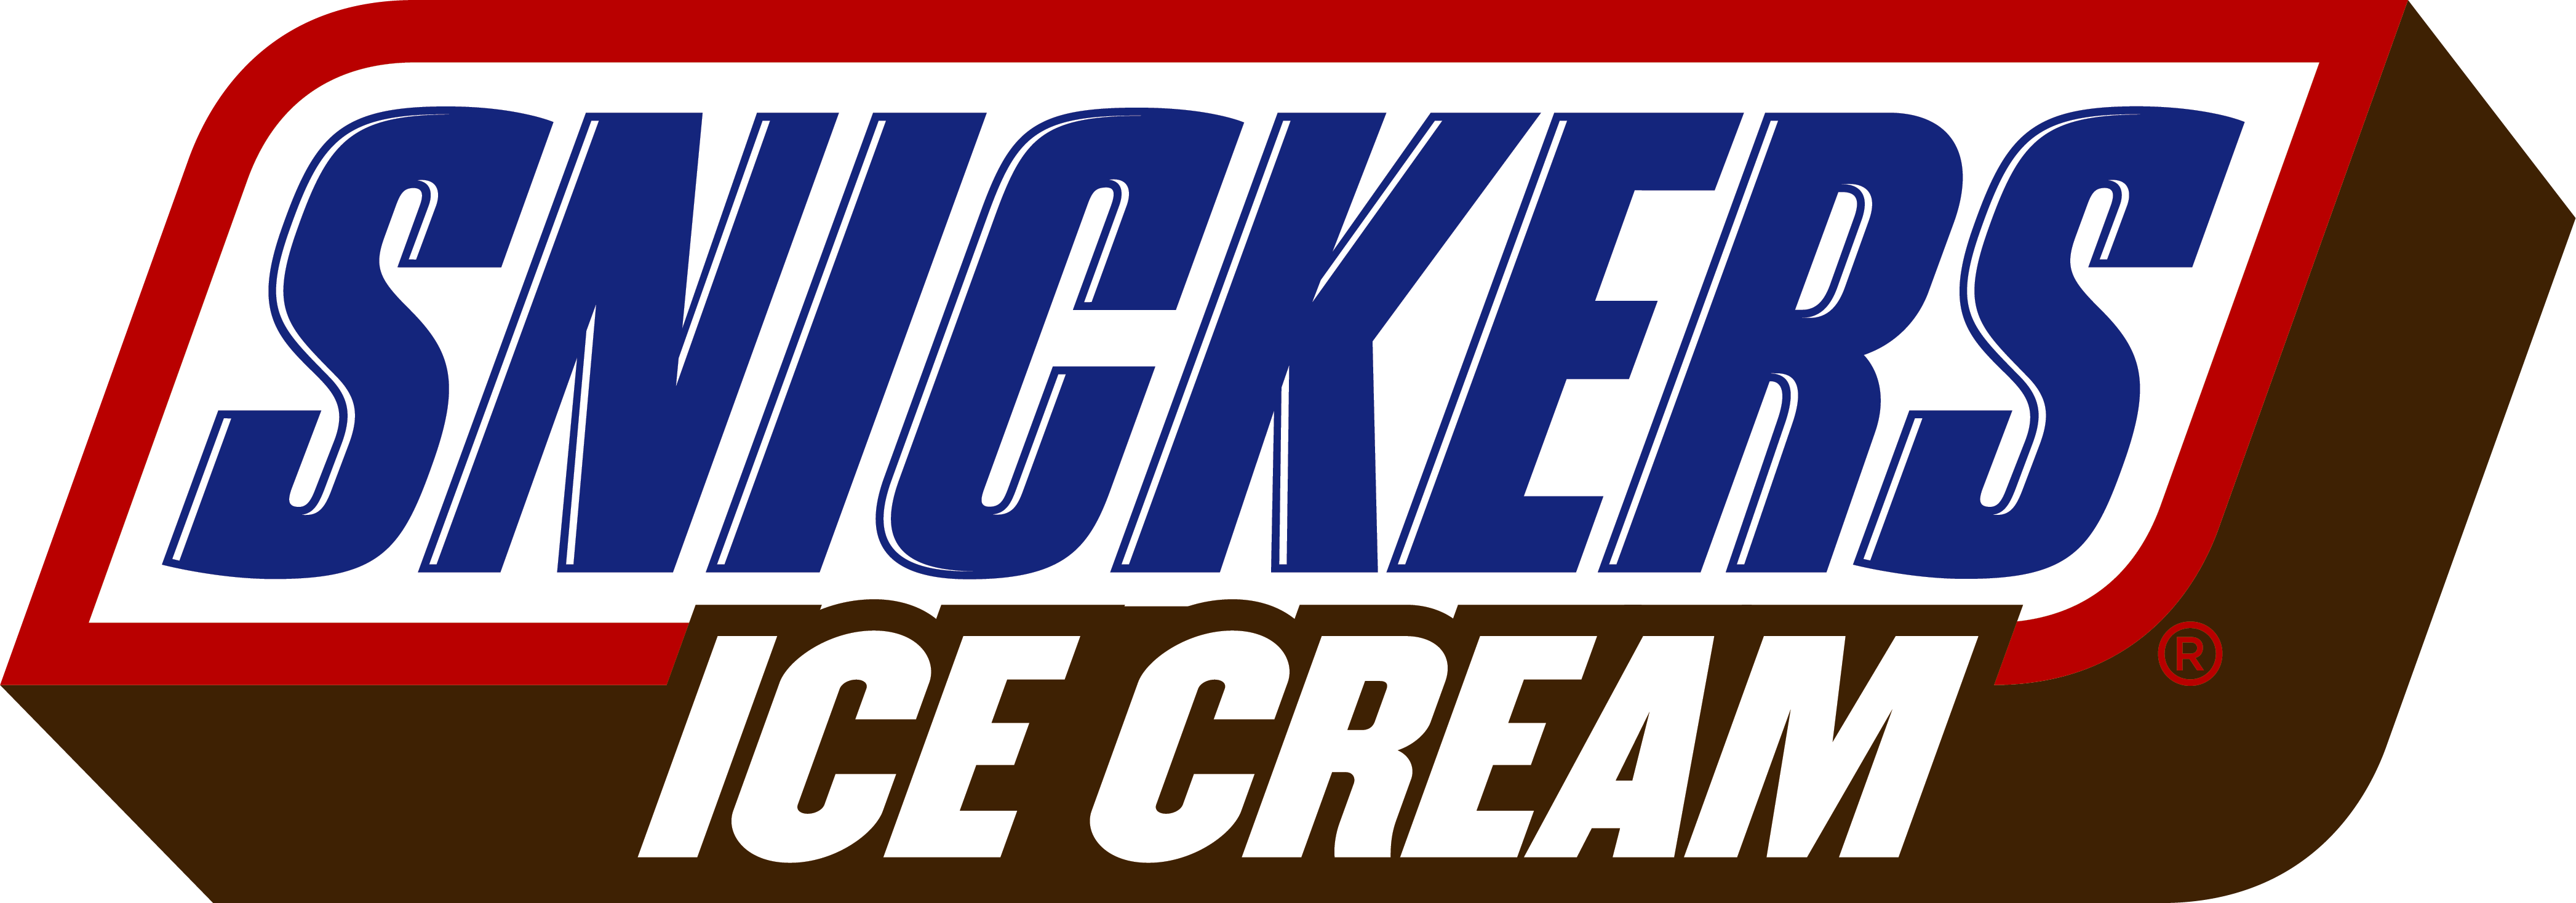 Snickers Ice Cream logo 2020